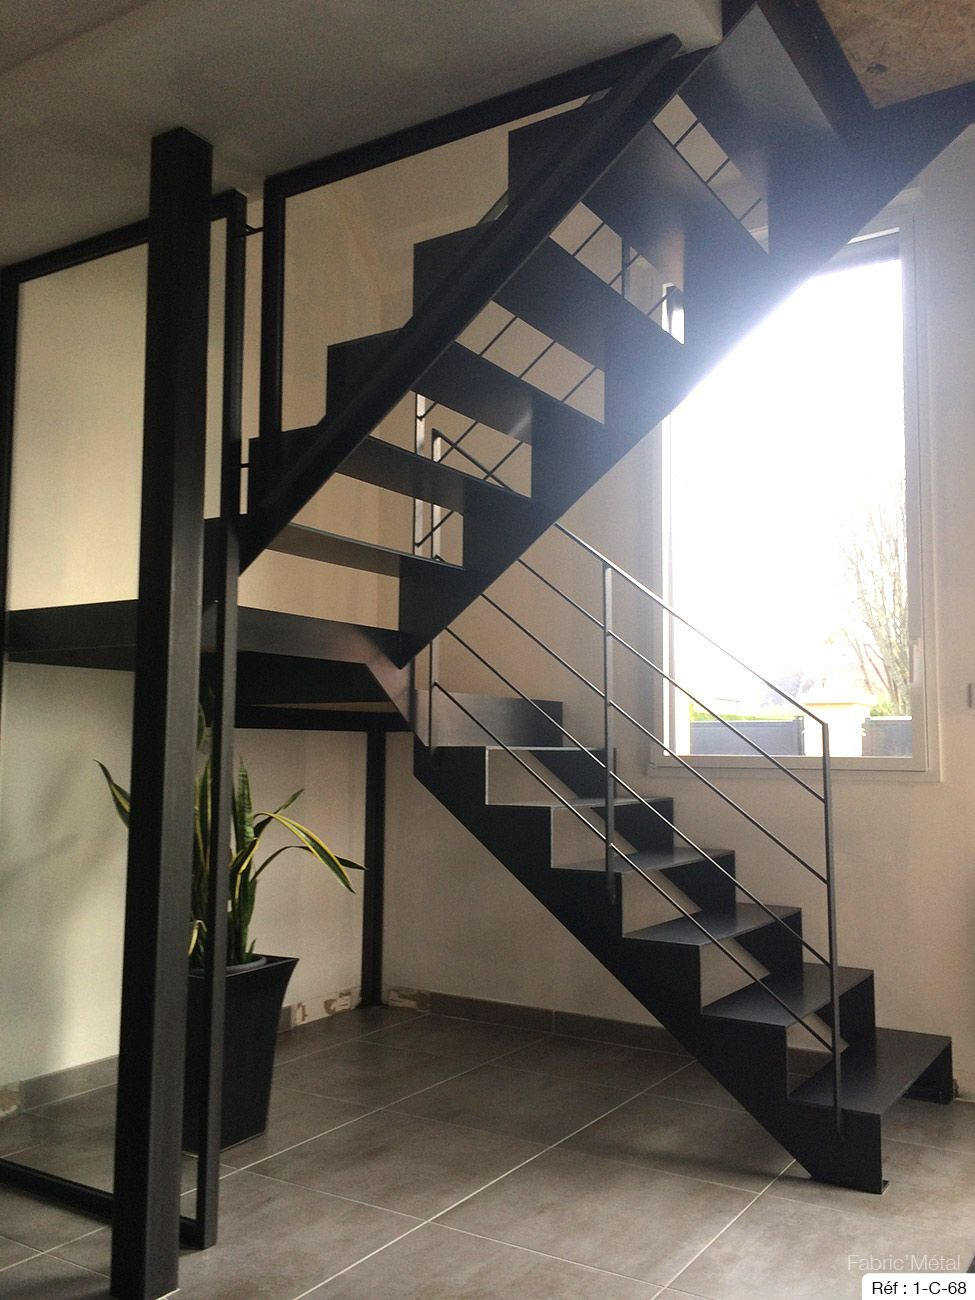 fabricant escalier deux quarts tournant en bretagne vannes rennes escaliers pinterest. Black Bedroom Furniture Sets. Home Design Ideas